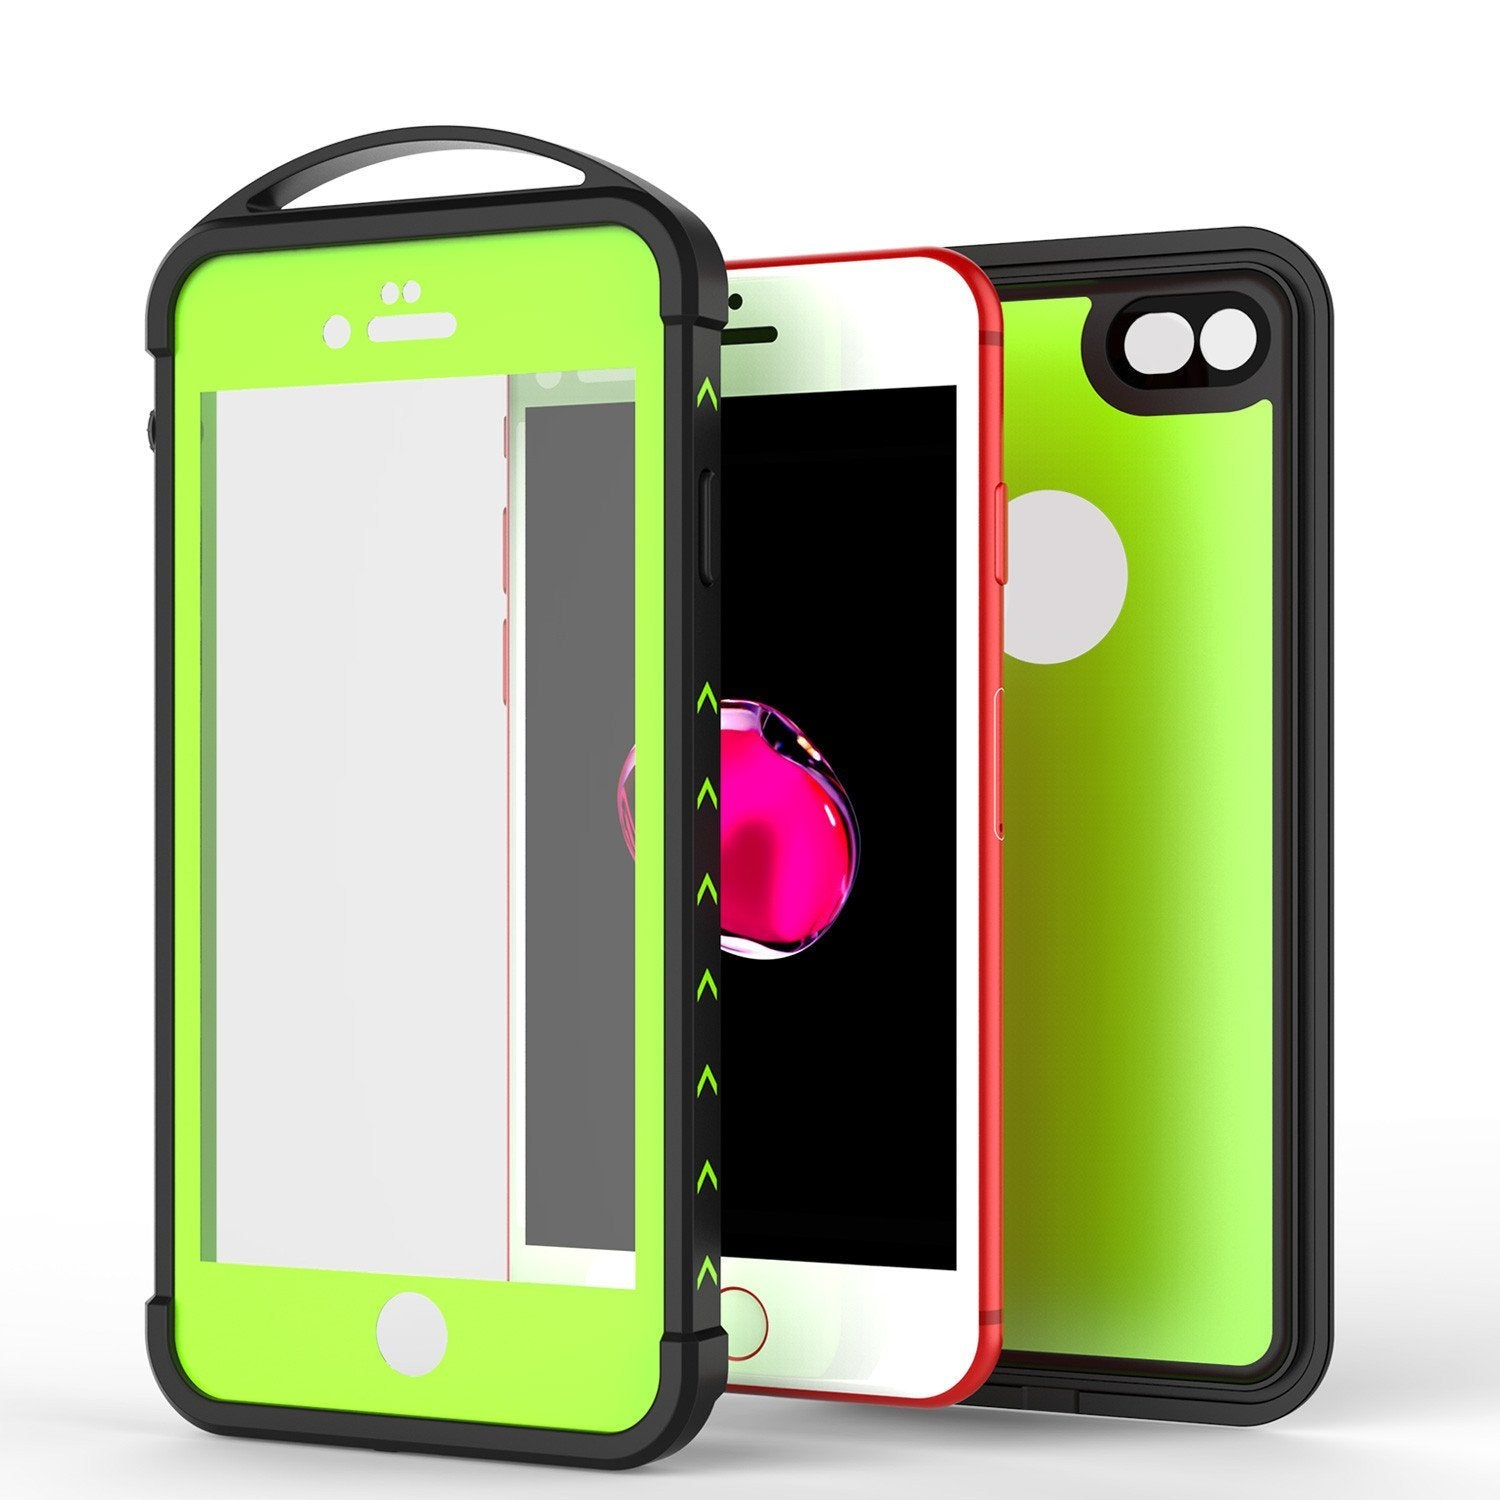 iPhone 8 Waterproof Case, Punkcase ALPINE Series, Light Green | Heavy Duty Armor Cover